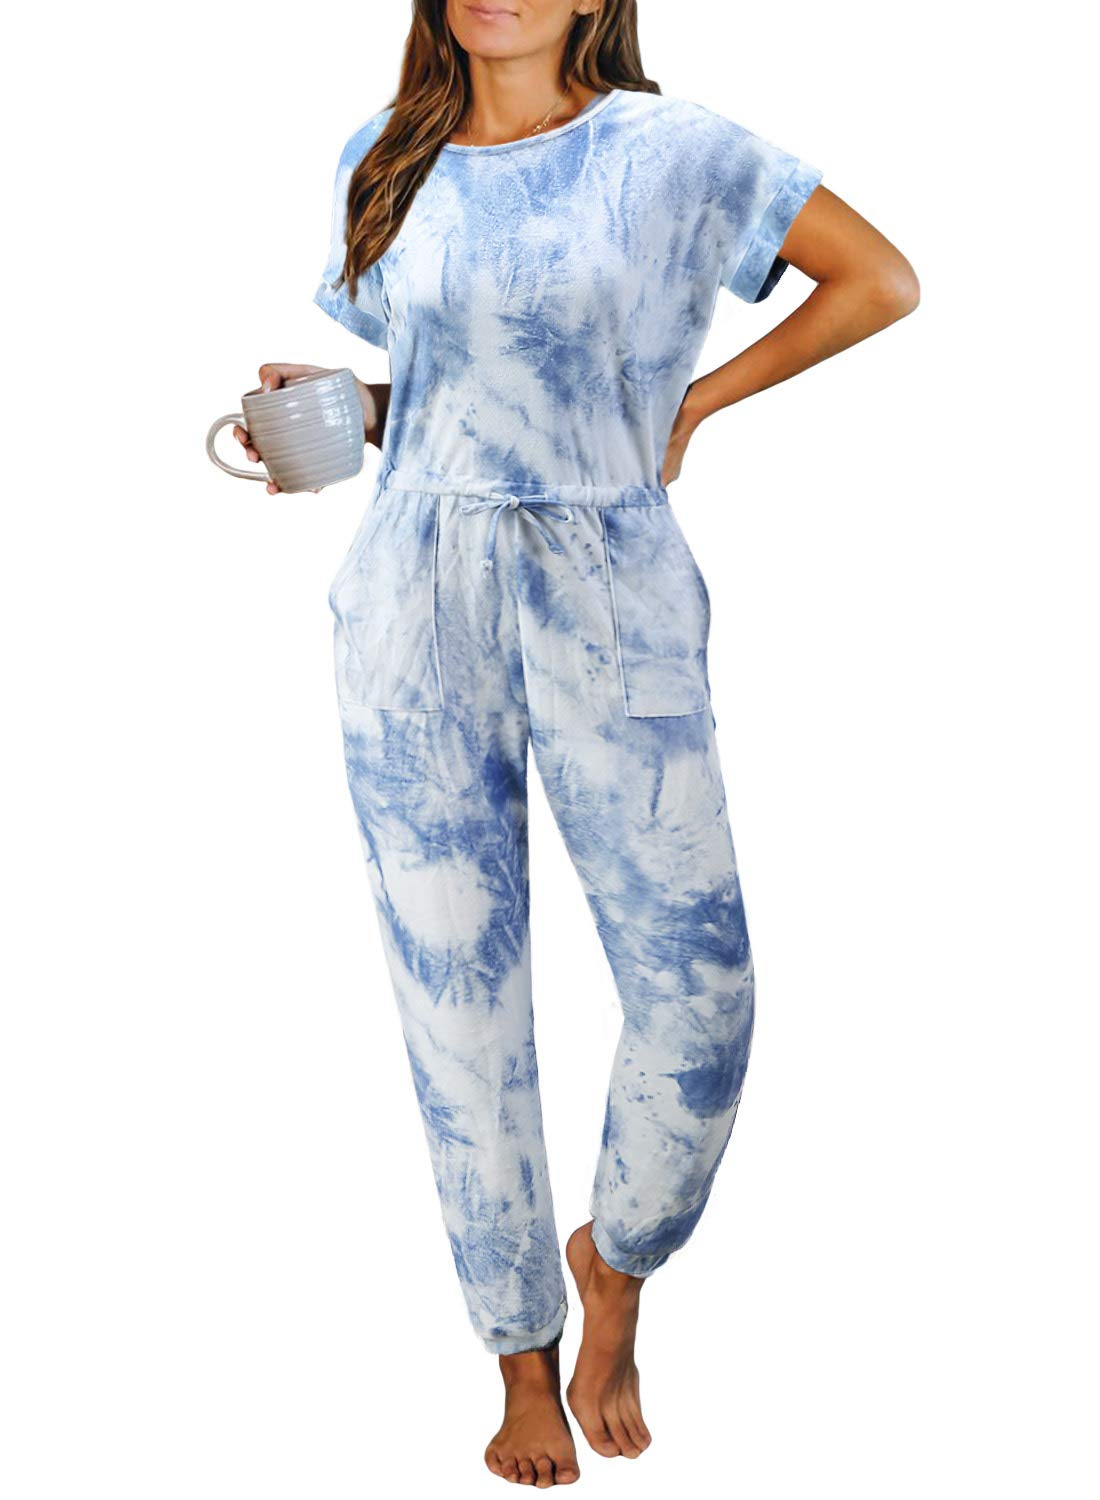 Elapsy Womens Tie Dye Printed Long Pajamas Set Keyhole Short Sleeve PJ Sets Jumpsuit Nightwear Loungewear